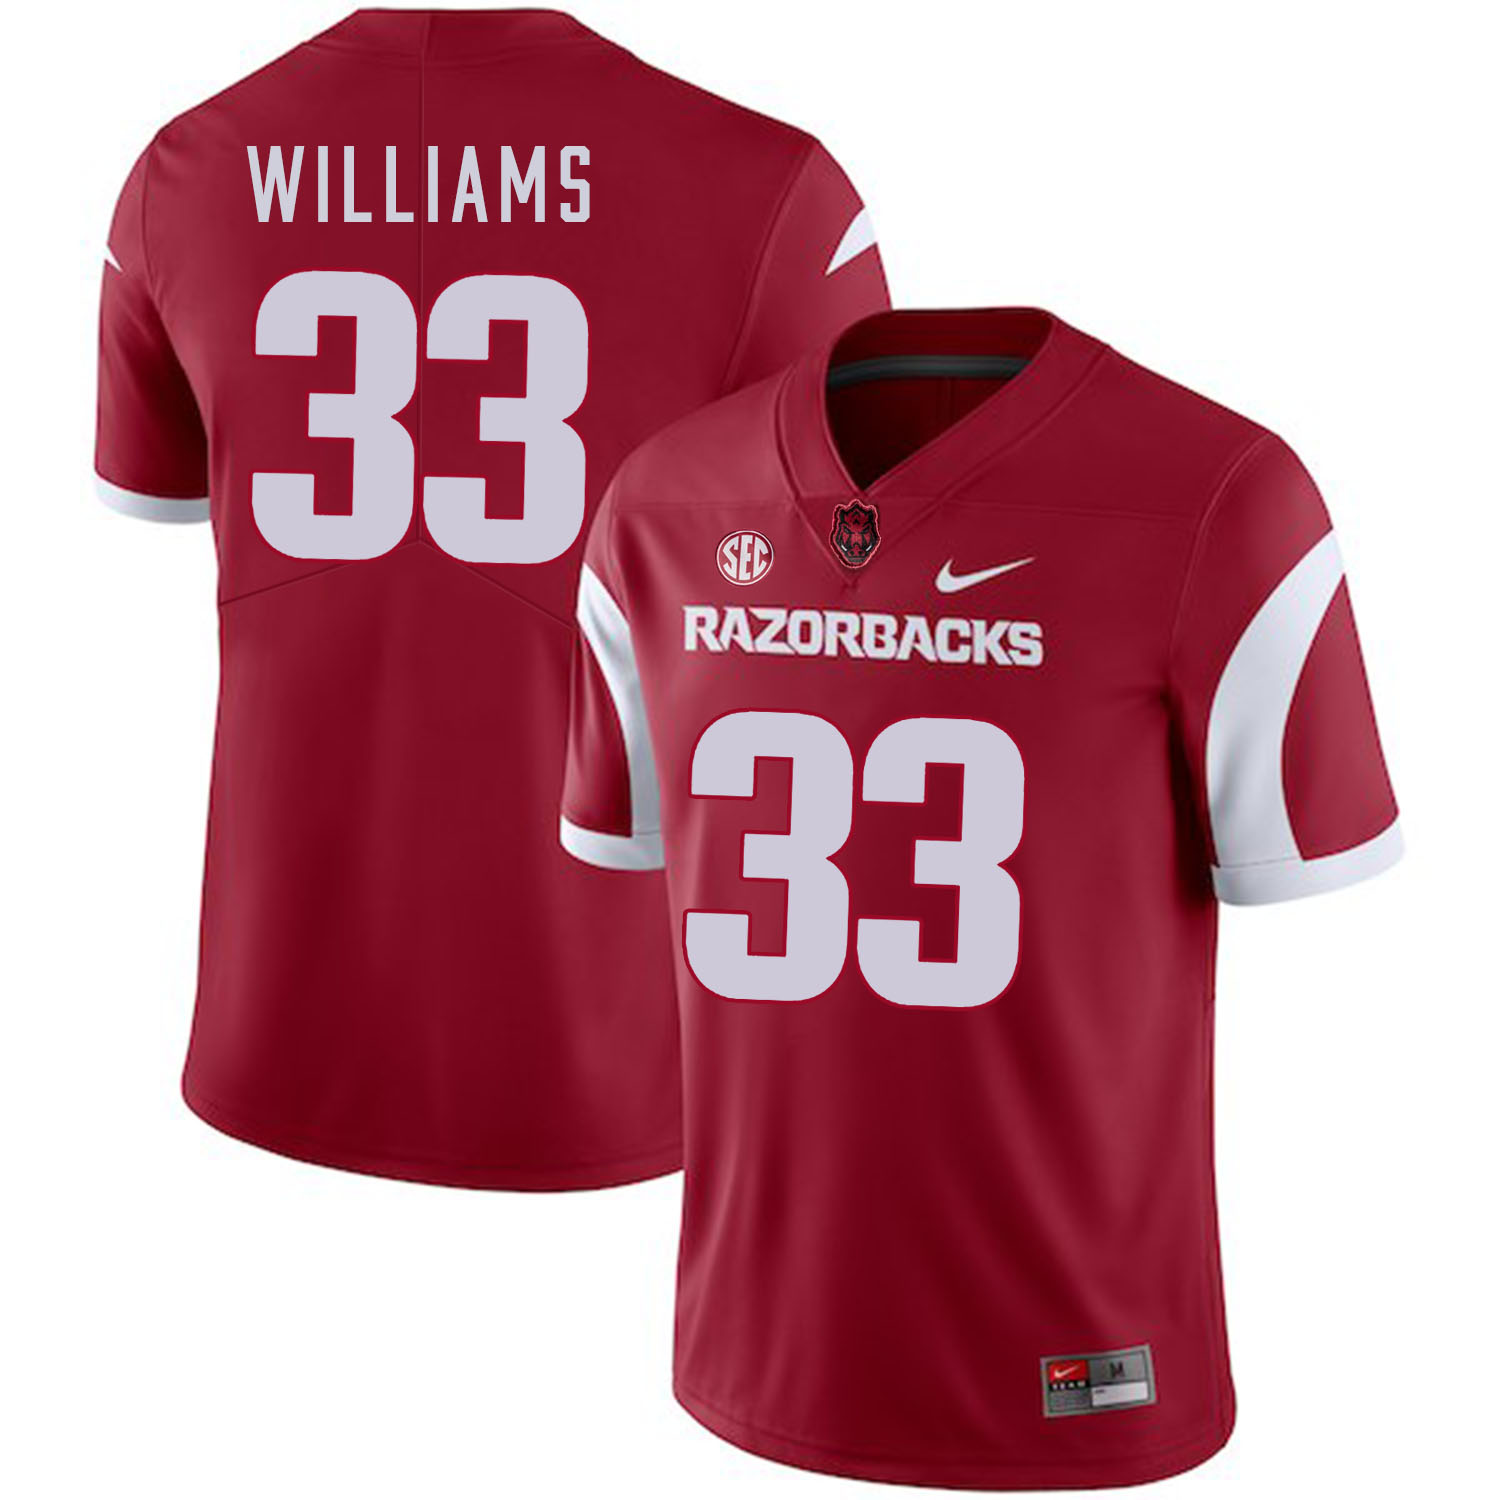 Arkansas Razorbacks 33 David Williams Red College Football Jersey